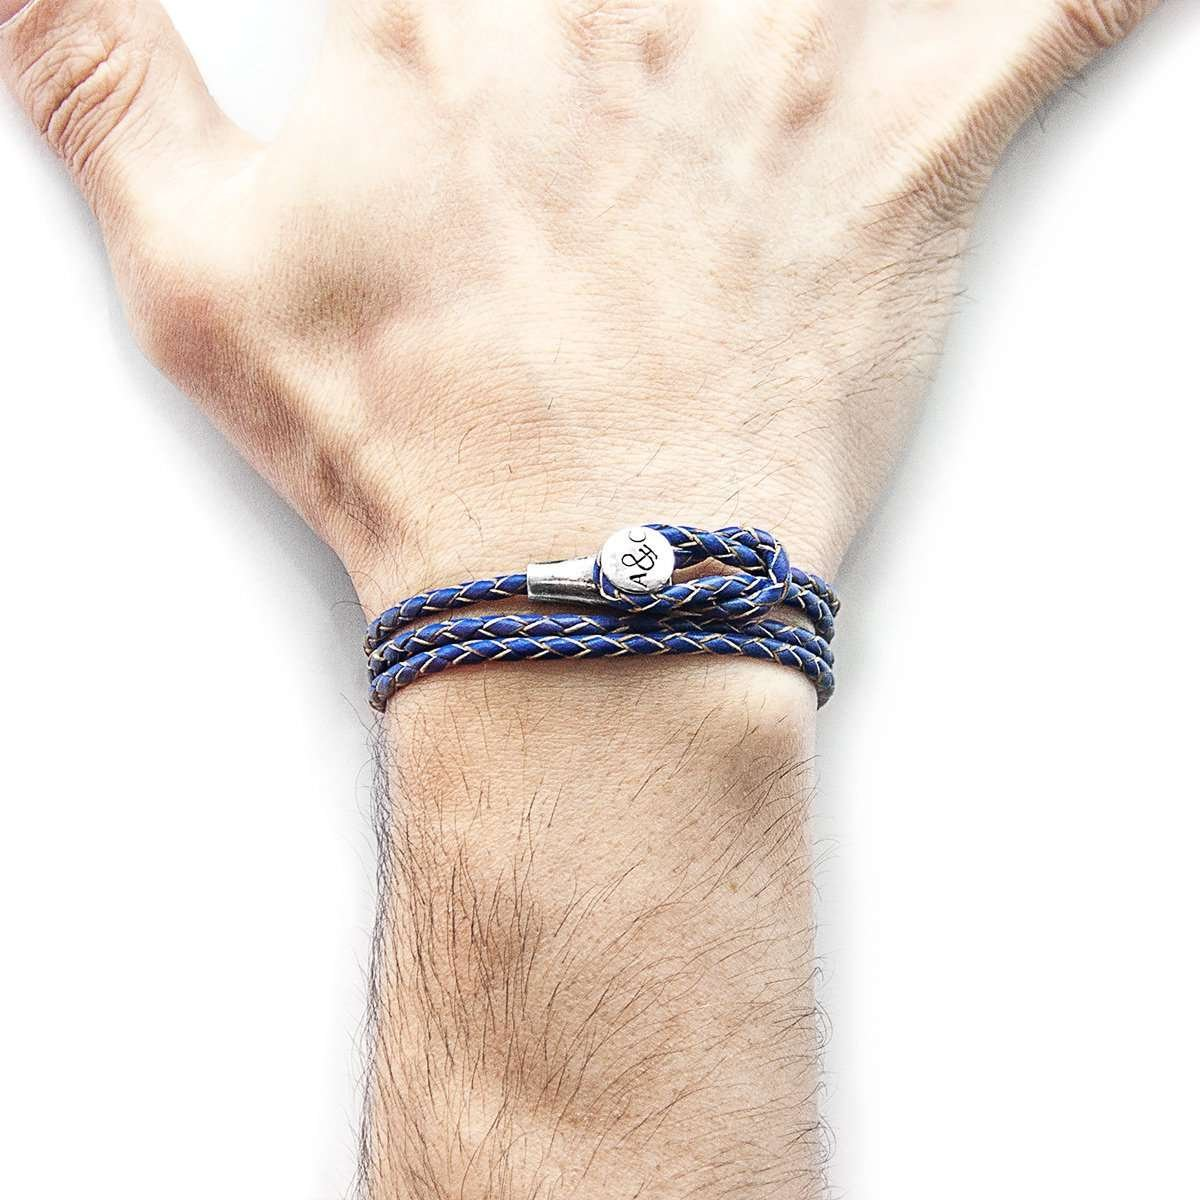 Royal Blue Dundee Silver and Leather Bracelet - Anchor & Crew